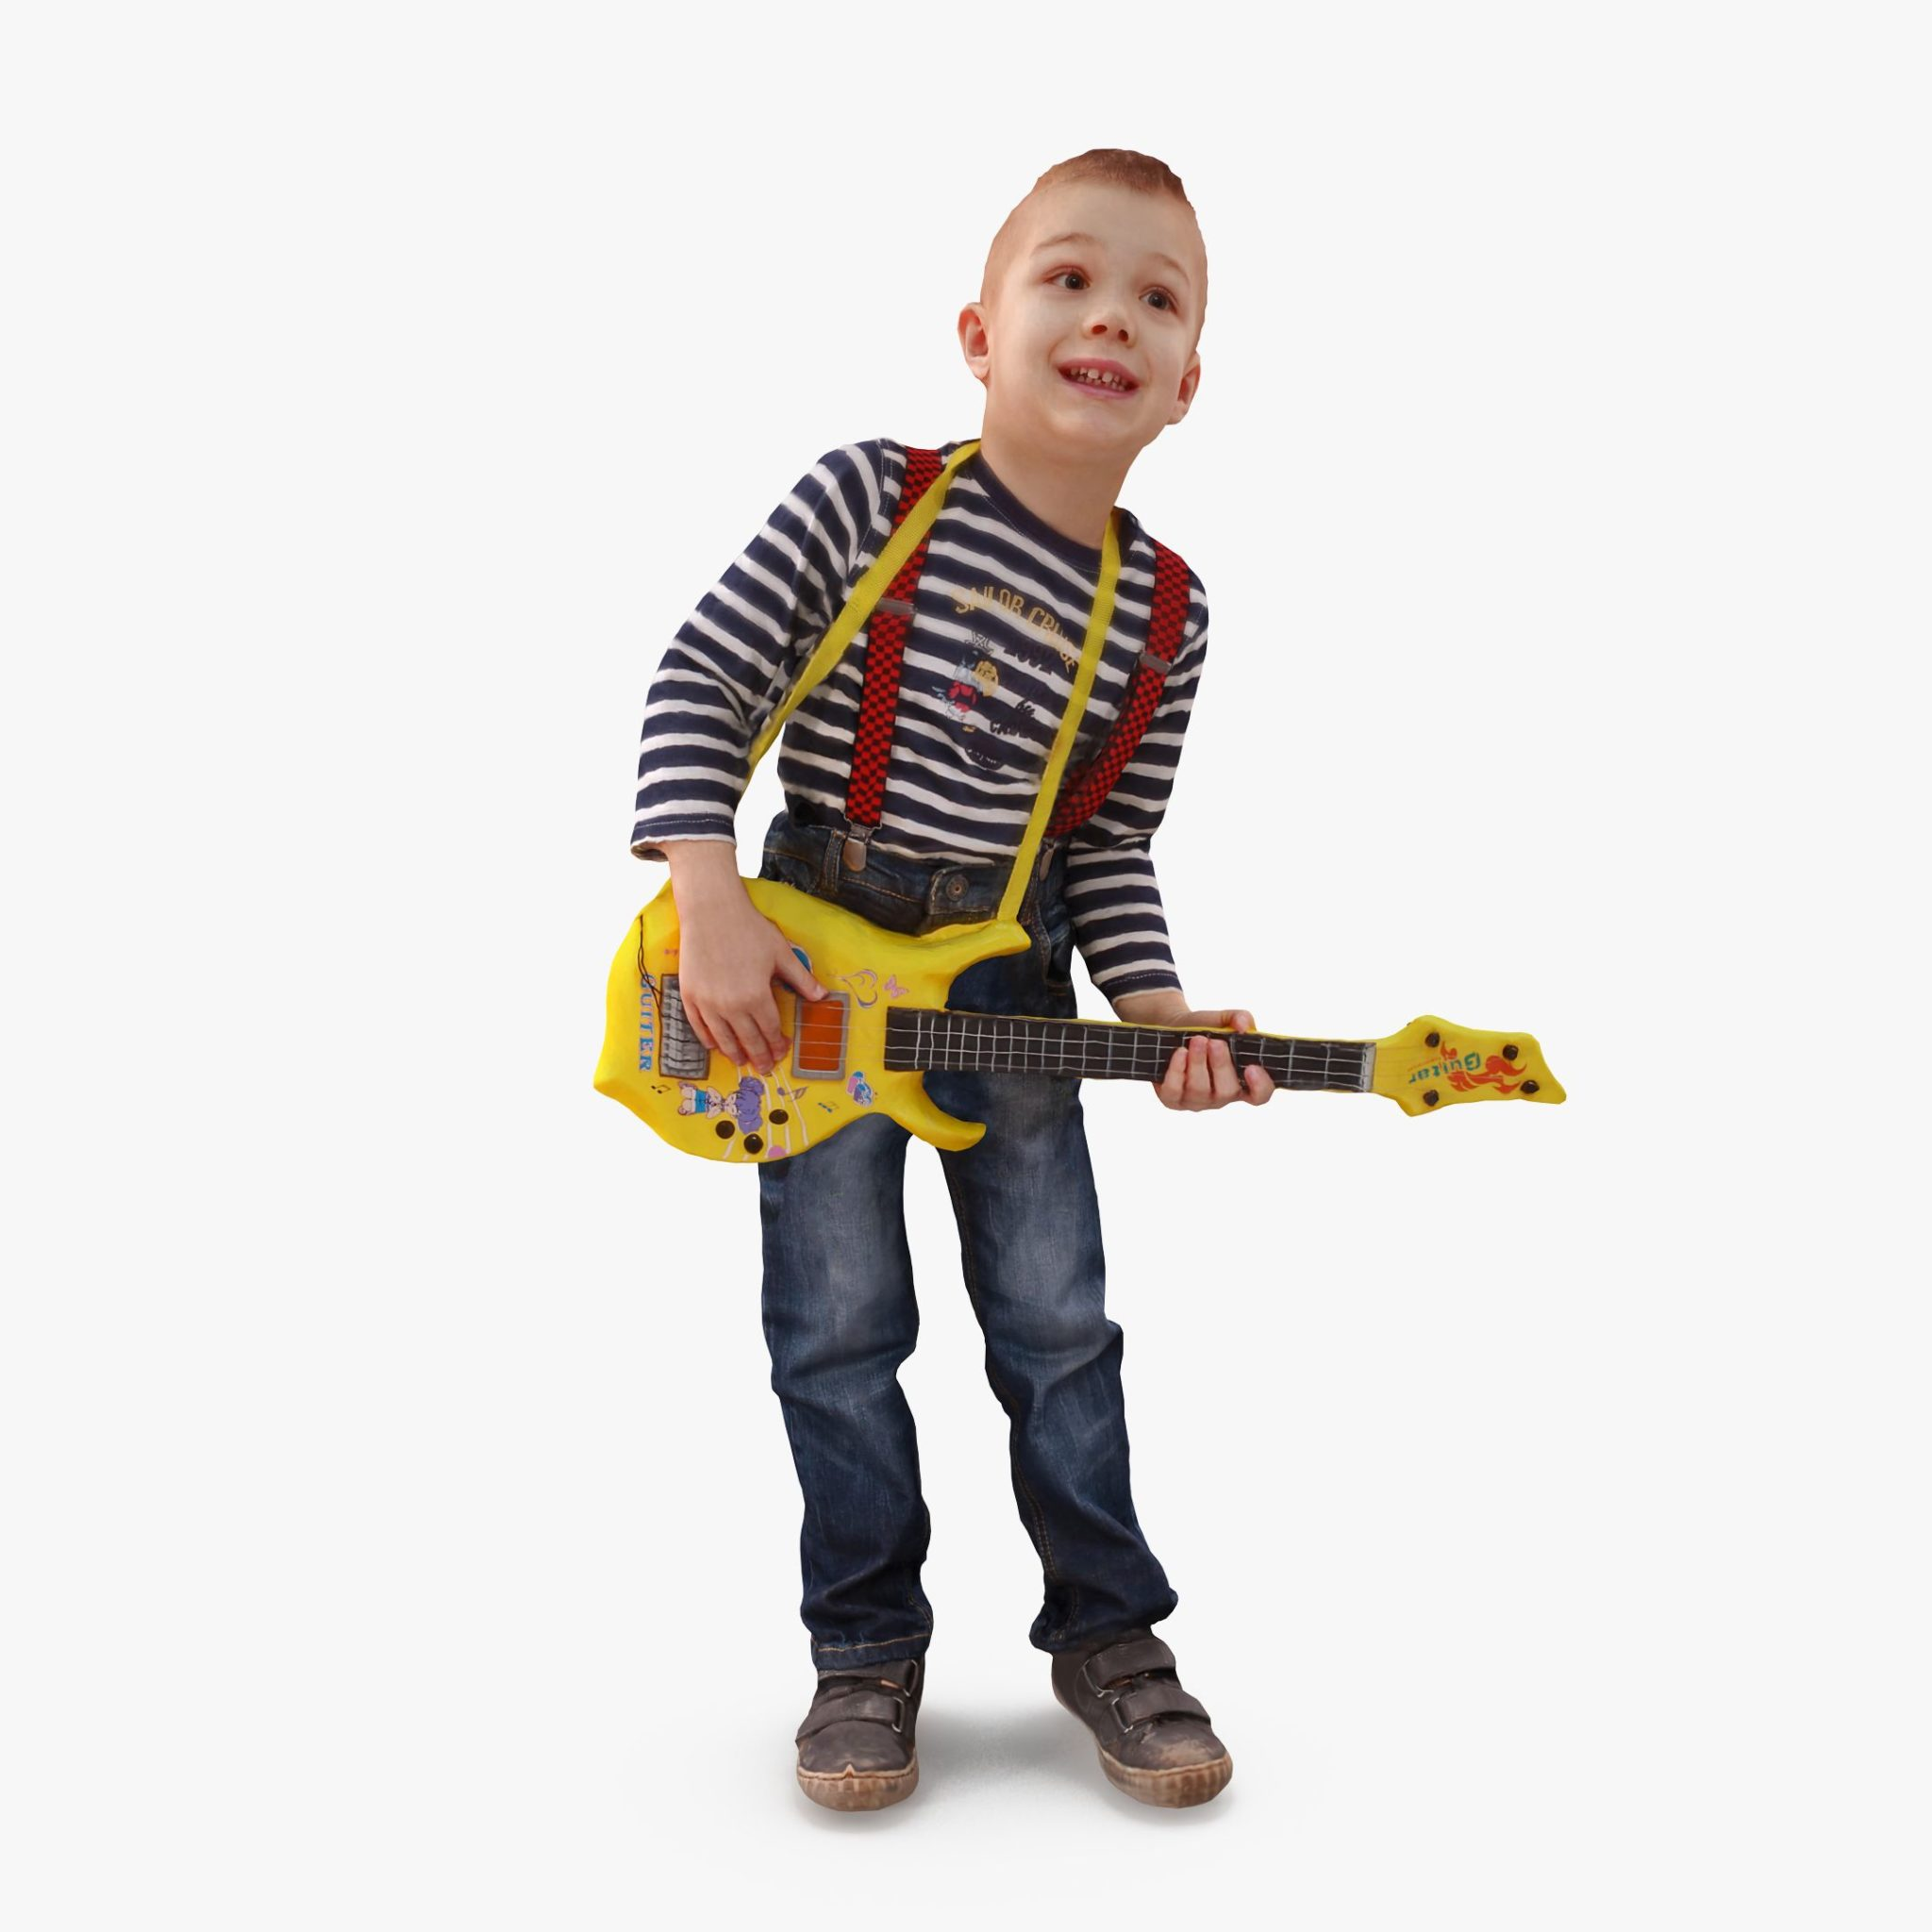 Guitar Boy 3D Model | 3DTree Scanning Studio